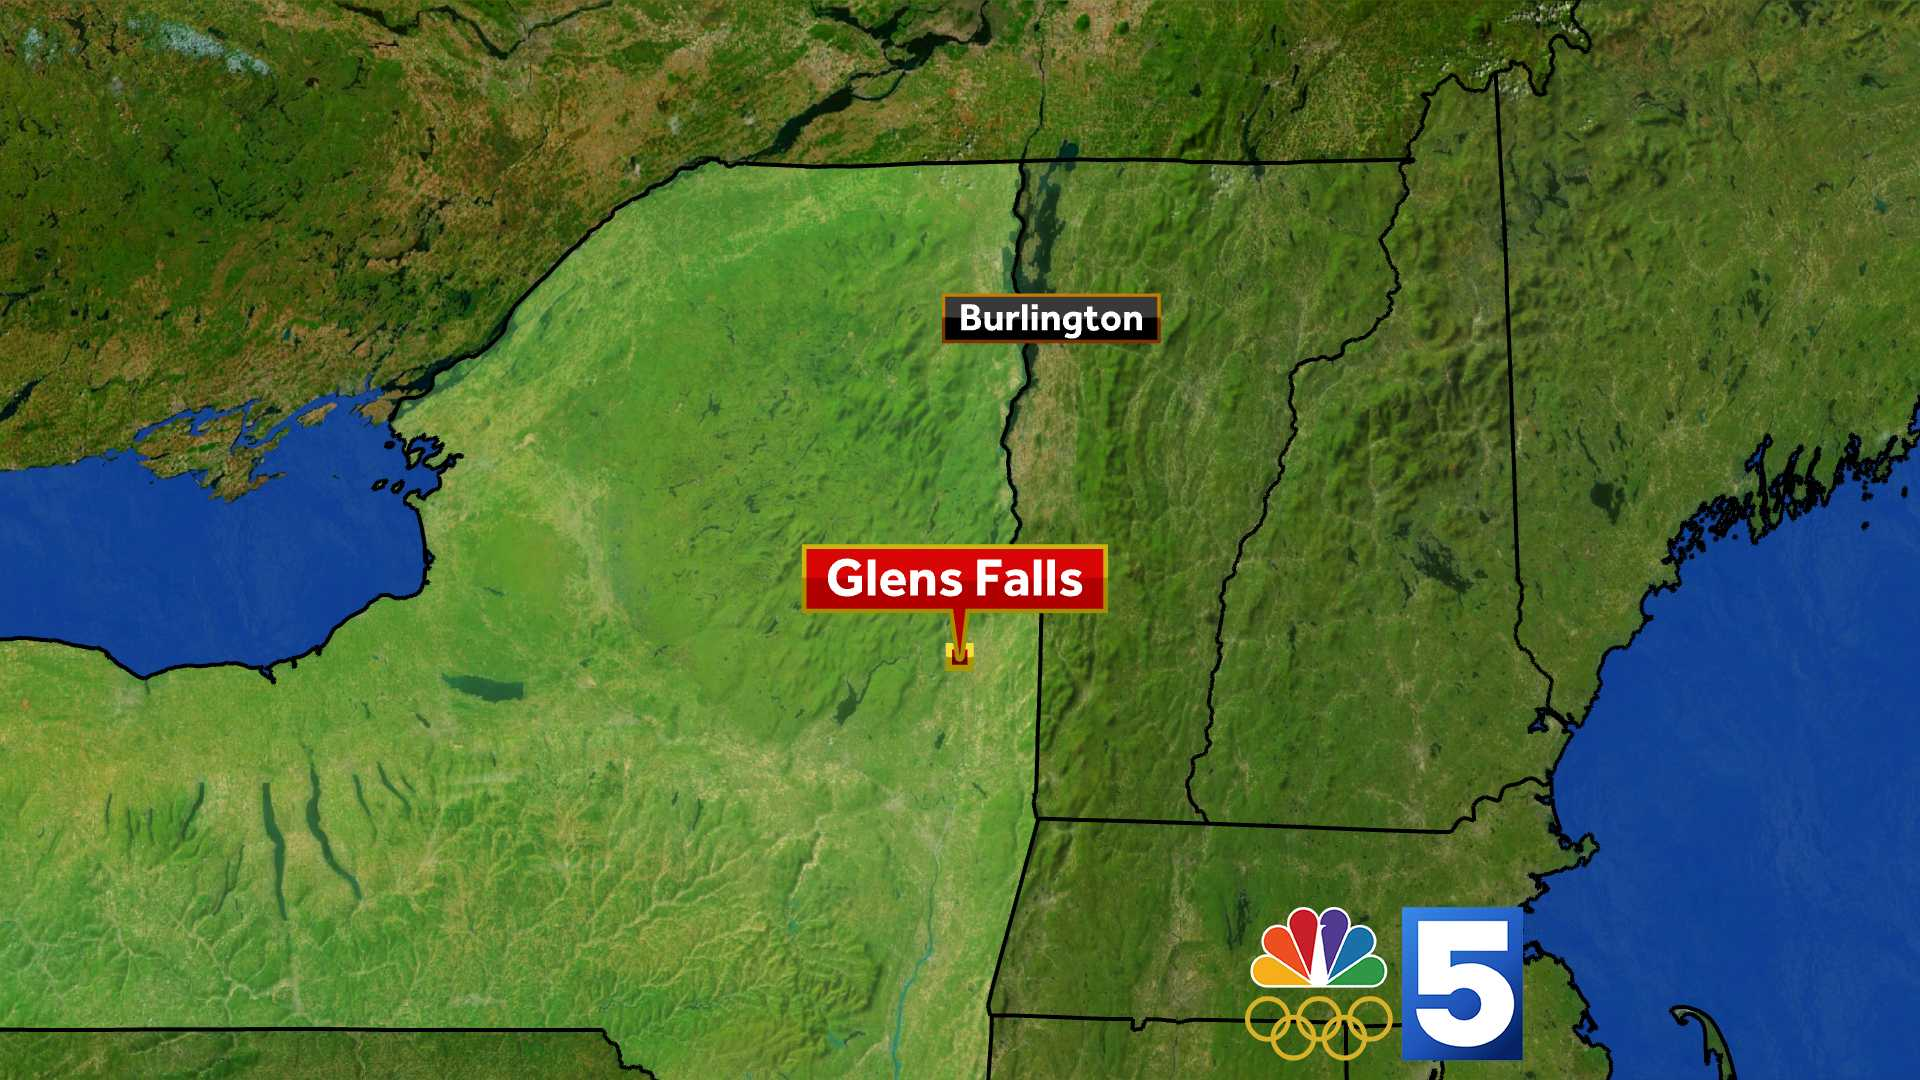 Man Accused Of Killing Woman And Child In Glens Falls